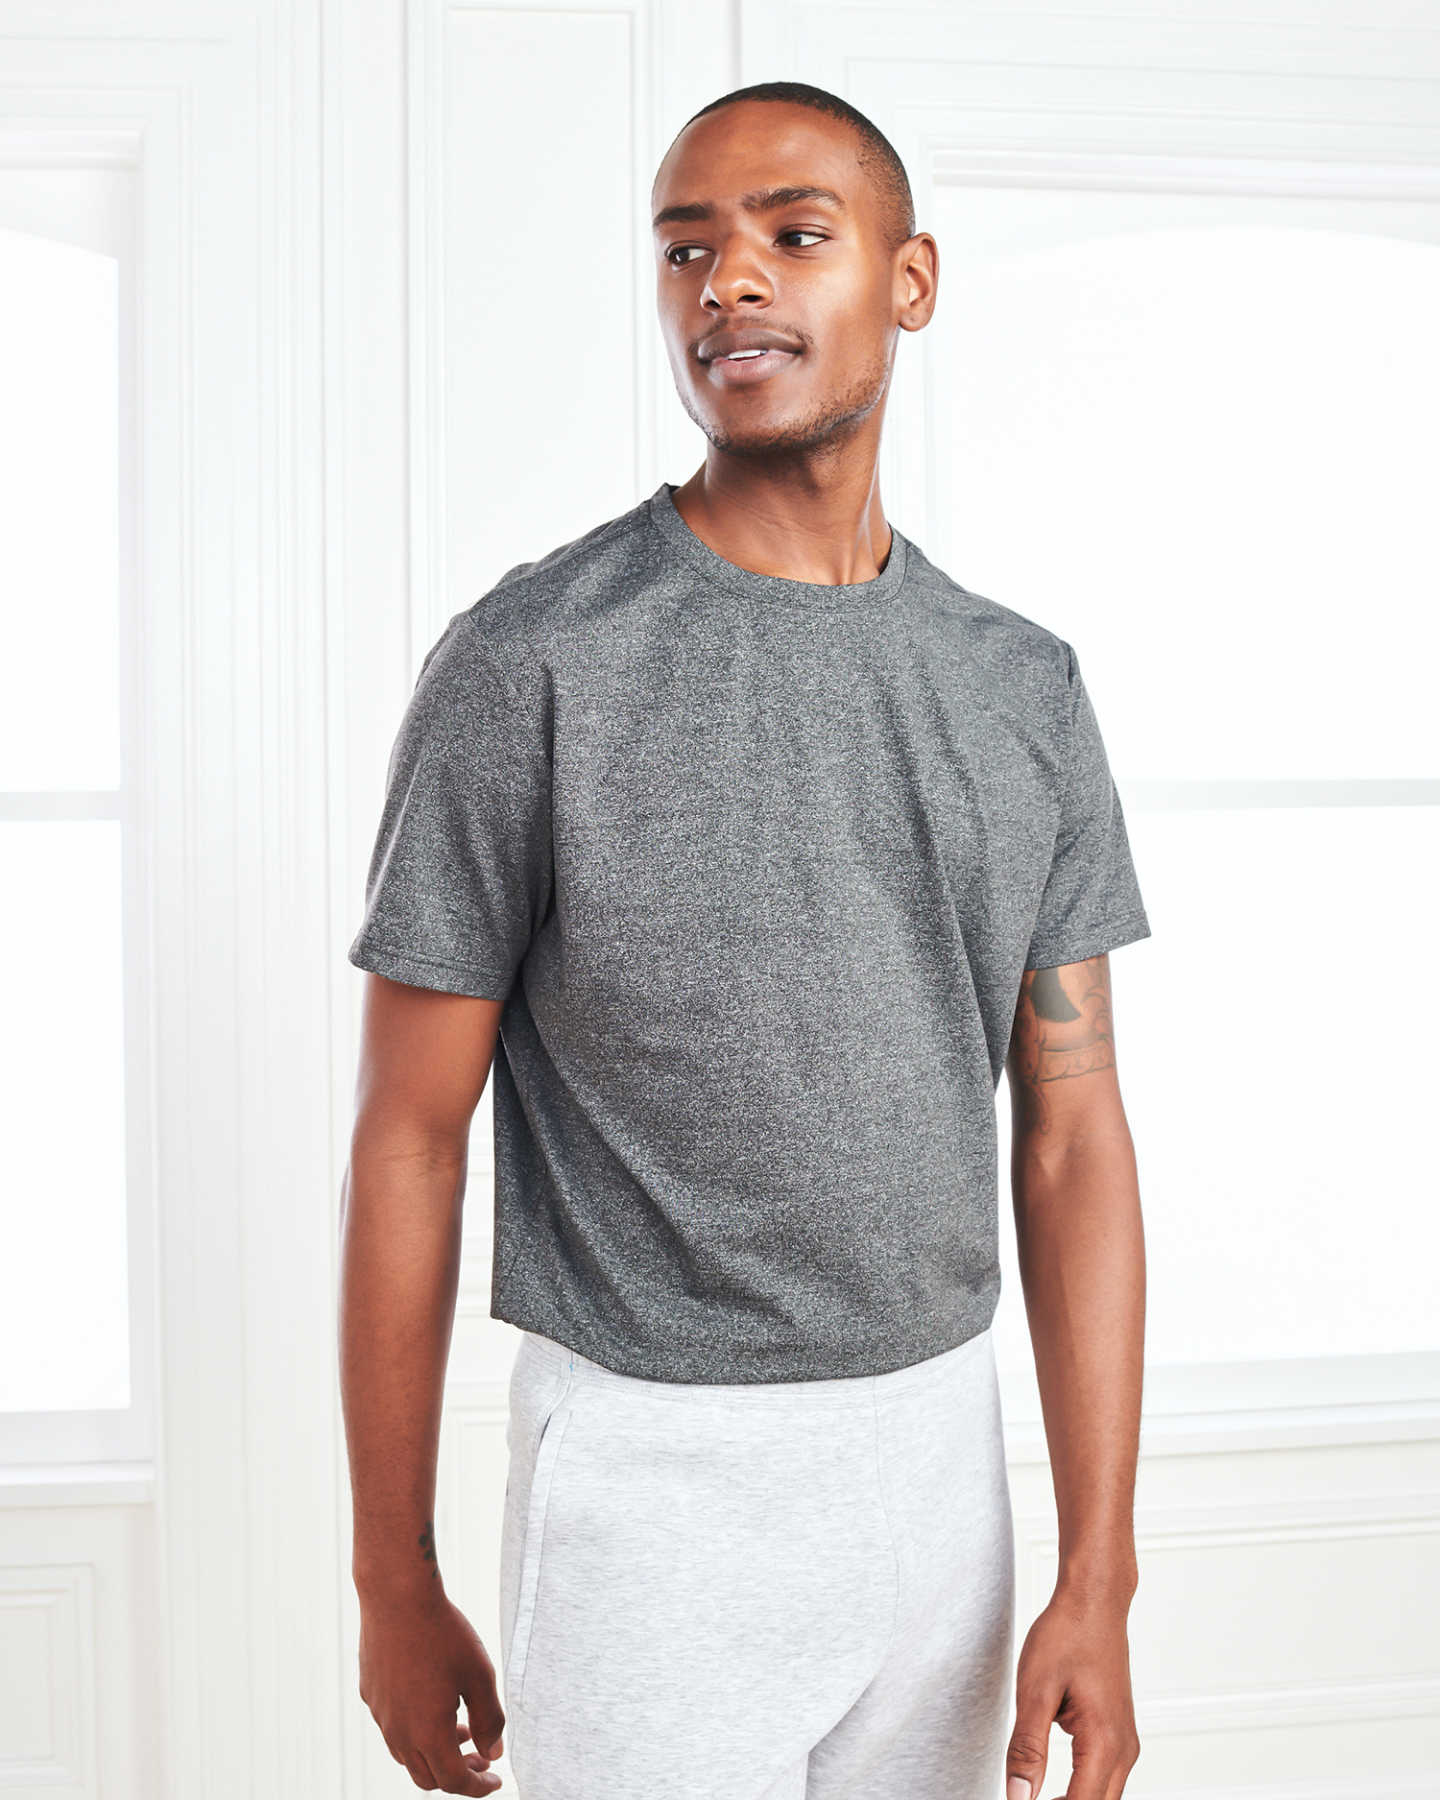 Recycled Flowknit Tech Tee - undefined - 5